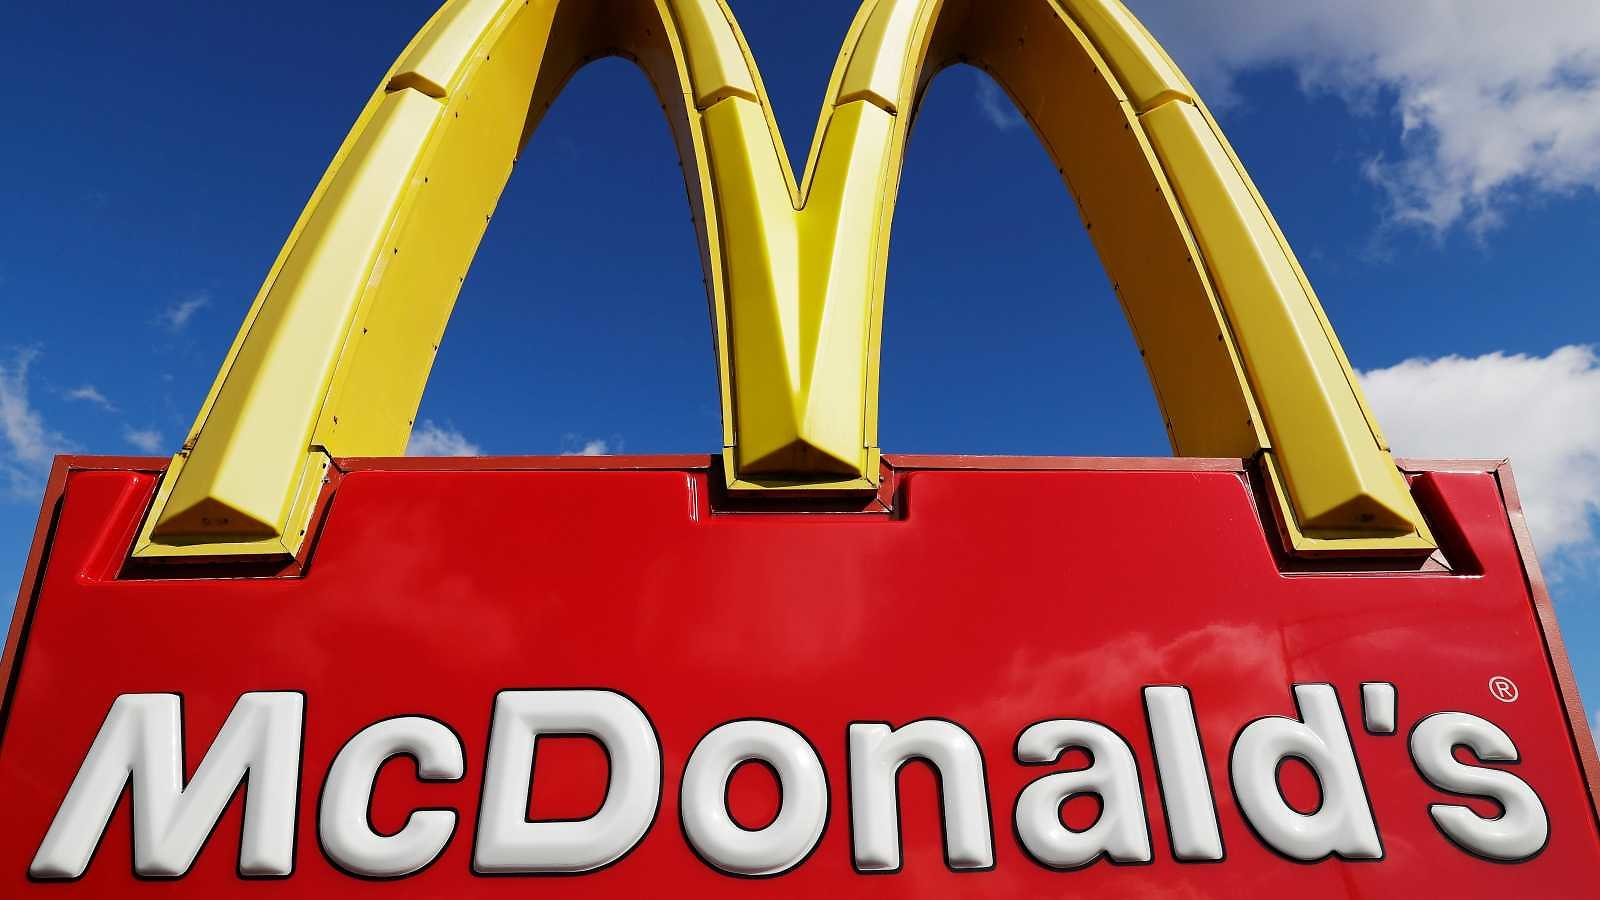 McDonald's Reports Strong US Sales Pumped By New Menu Items, But COVID-19 Drags International Sales